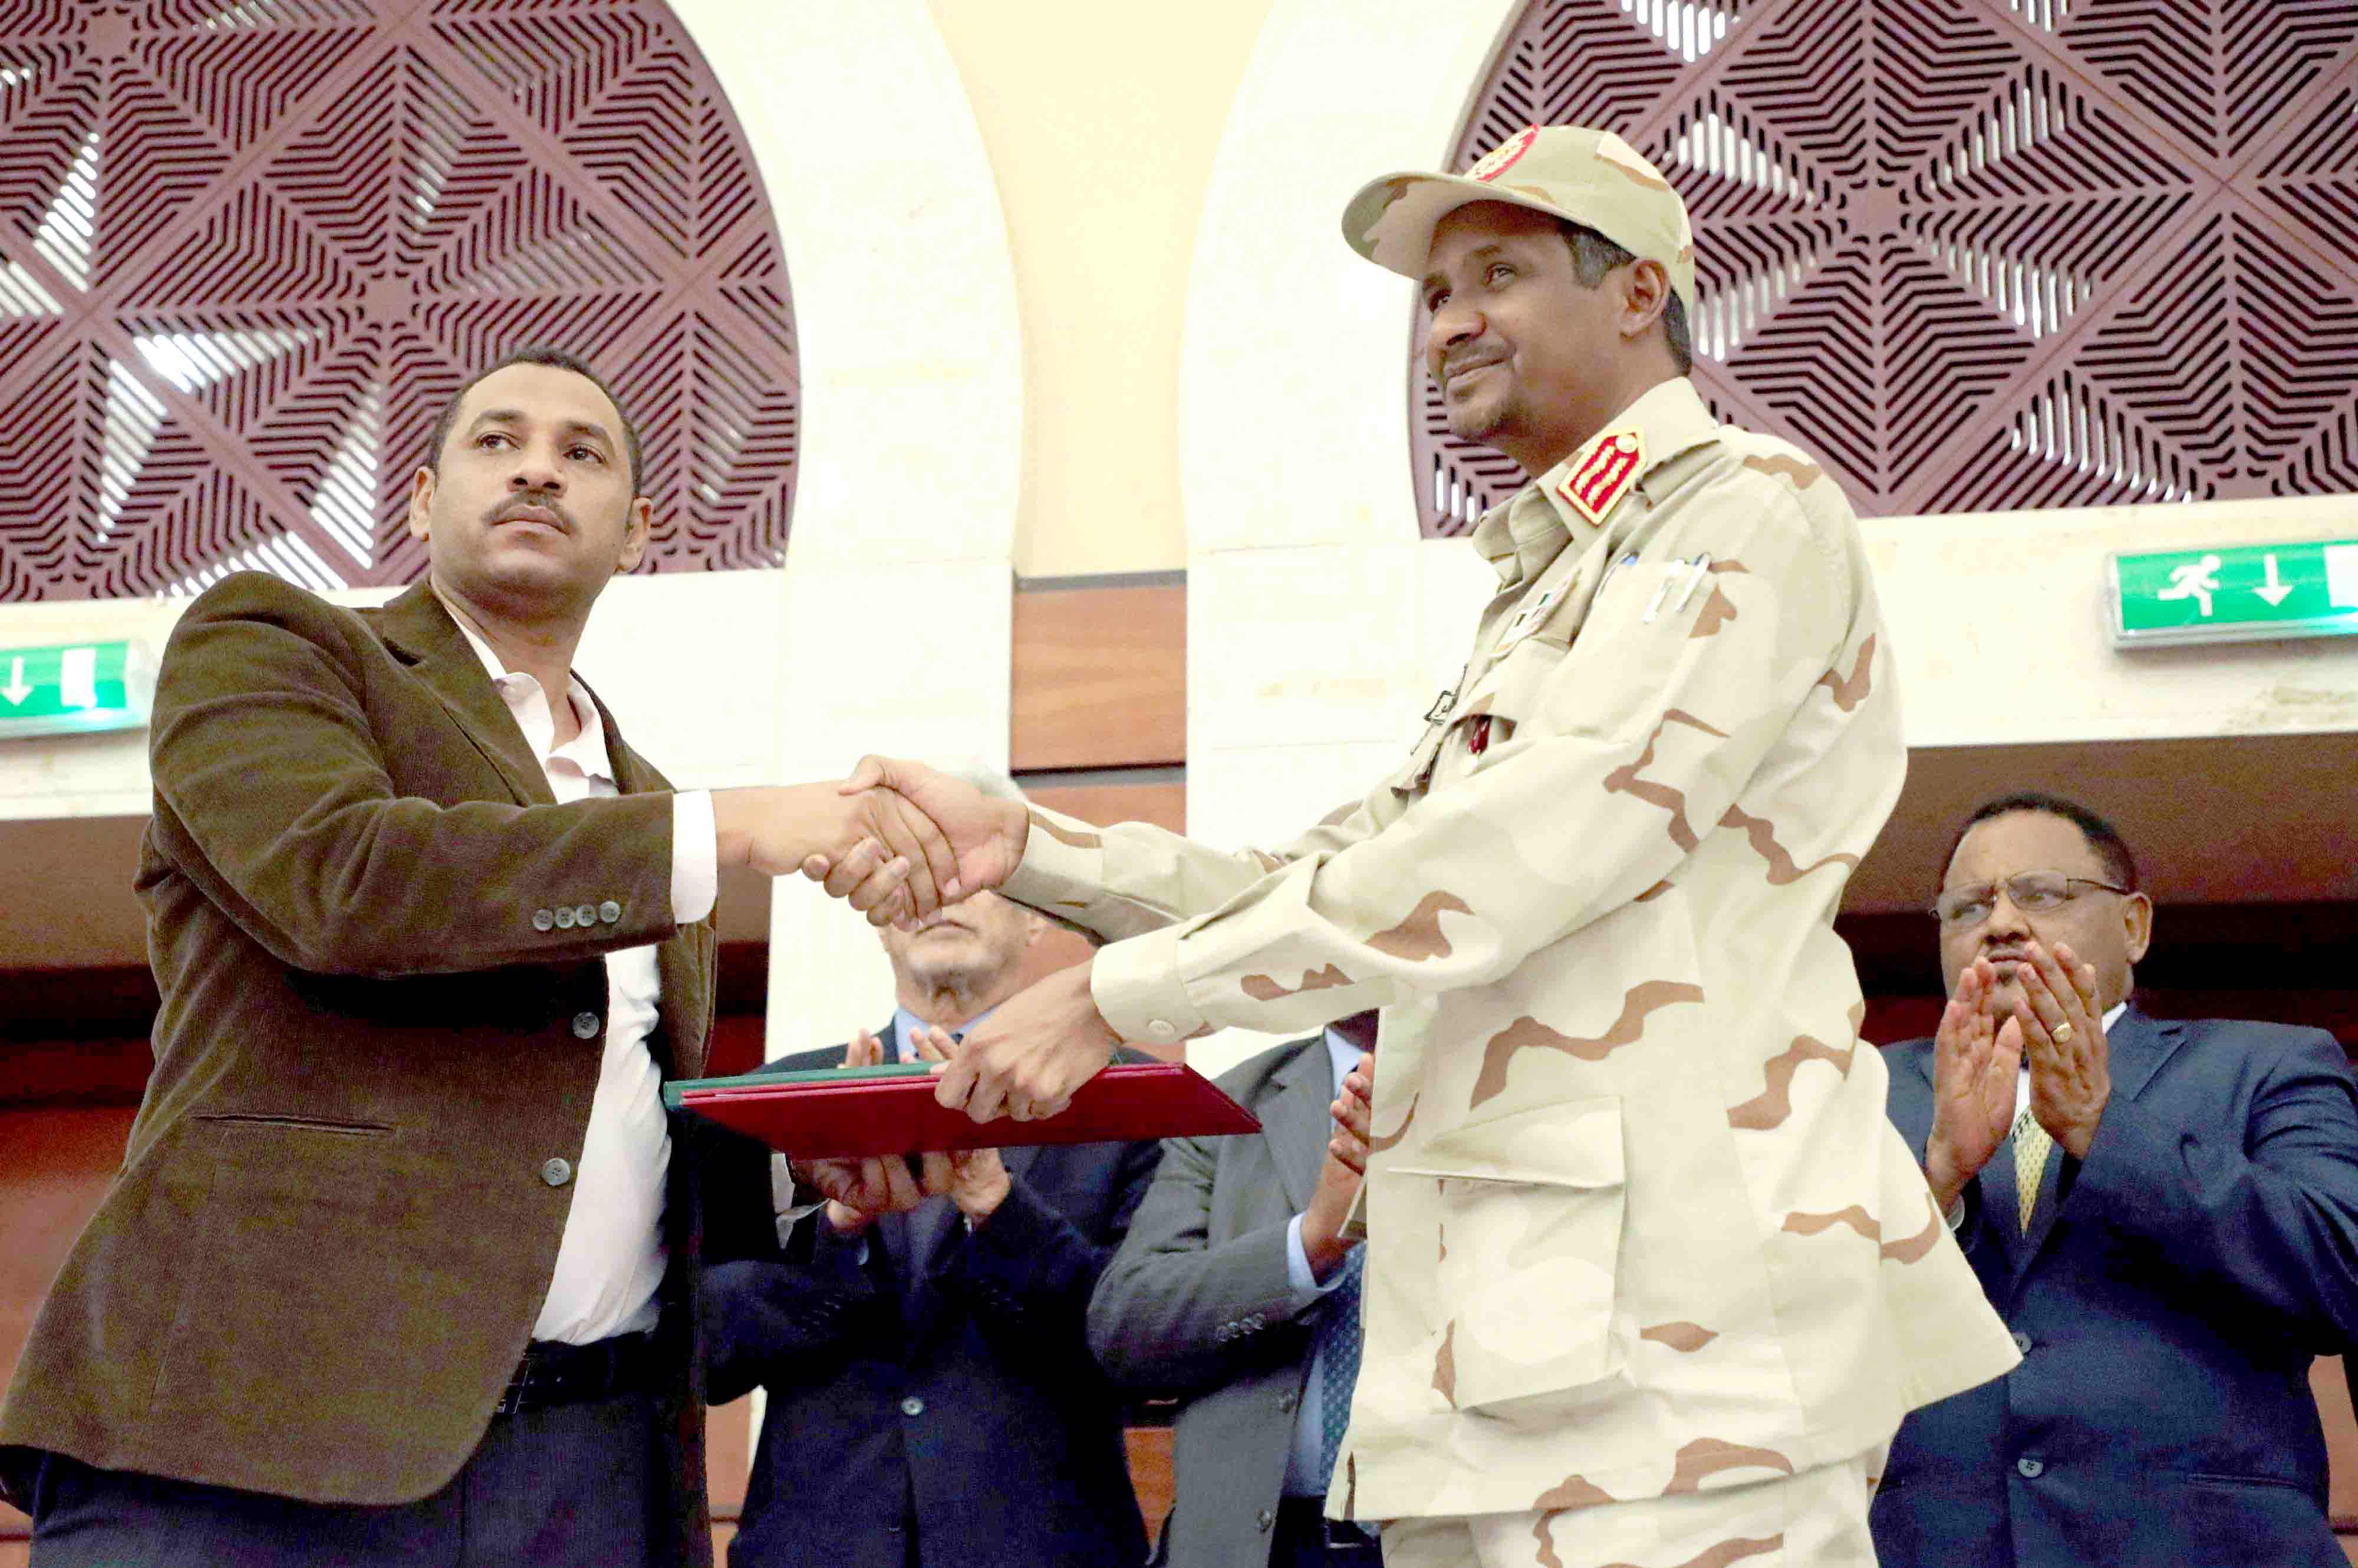 Deputy Head of Sudanese Transitional Military Council Mohamed Hamdan Dagalo and opposition alliance coalition's leader Ahmad al-Rabiah shake hands after signing a political accord in Khartoum, July 17. (Reuters)